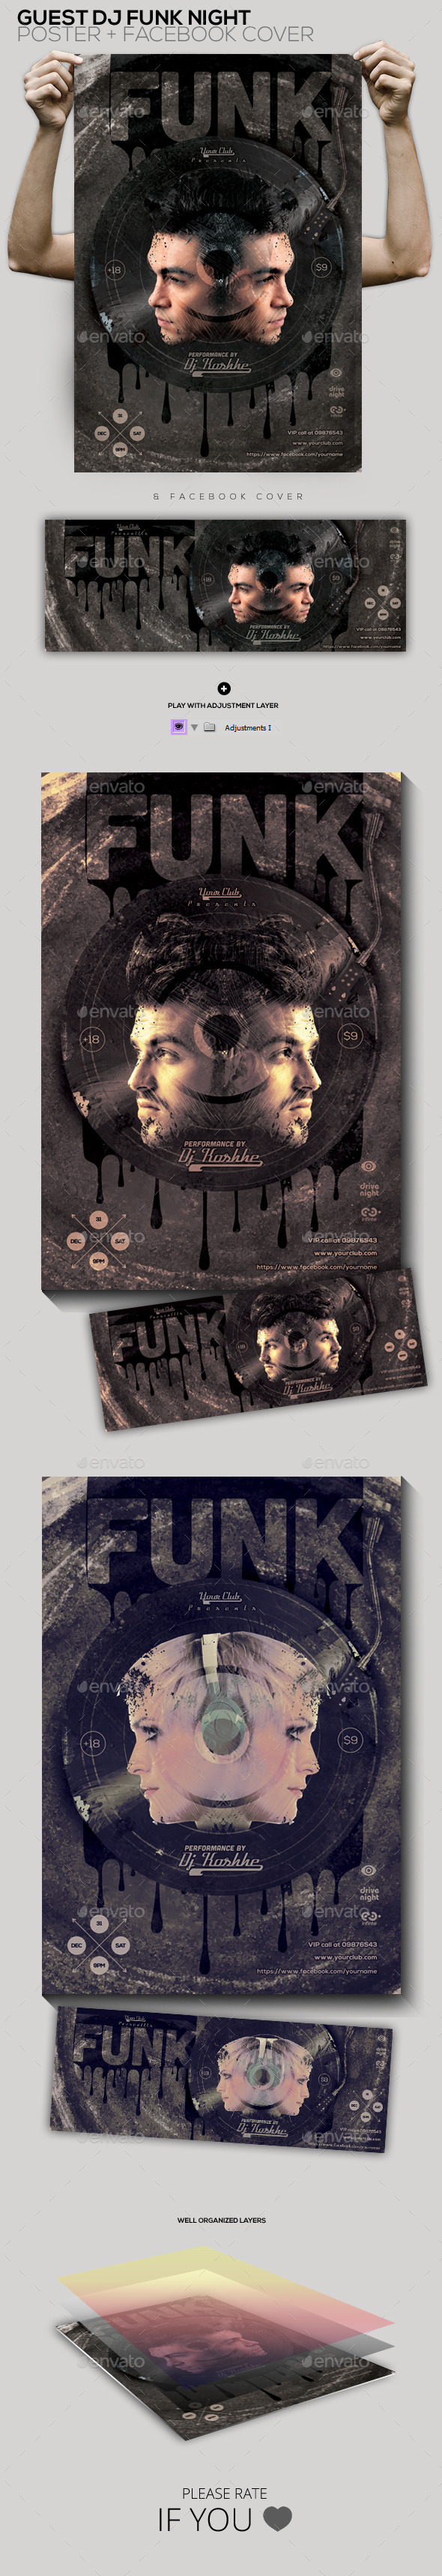 GraphicRiver Funk Guest Dj Party Flyer Poster Facebook Cover 10176473